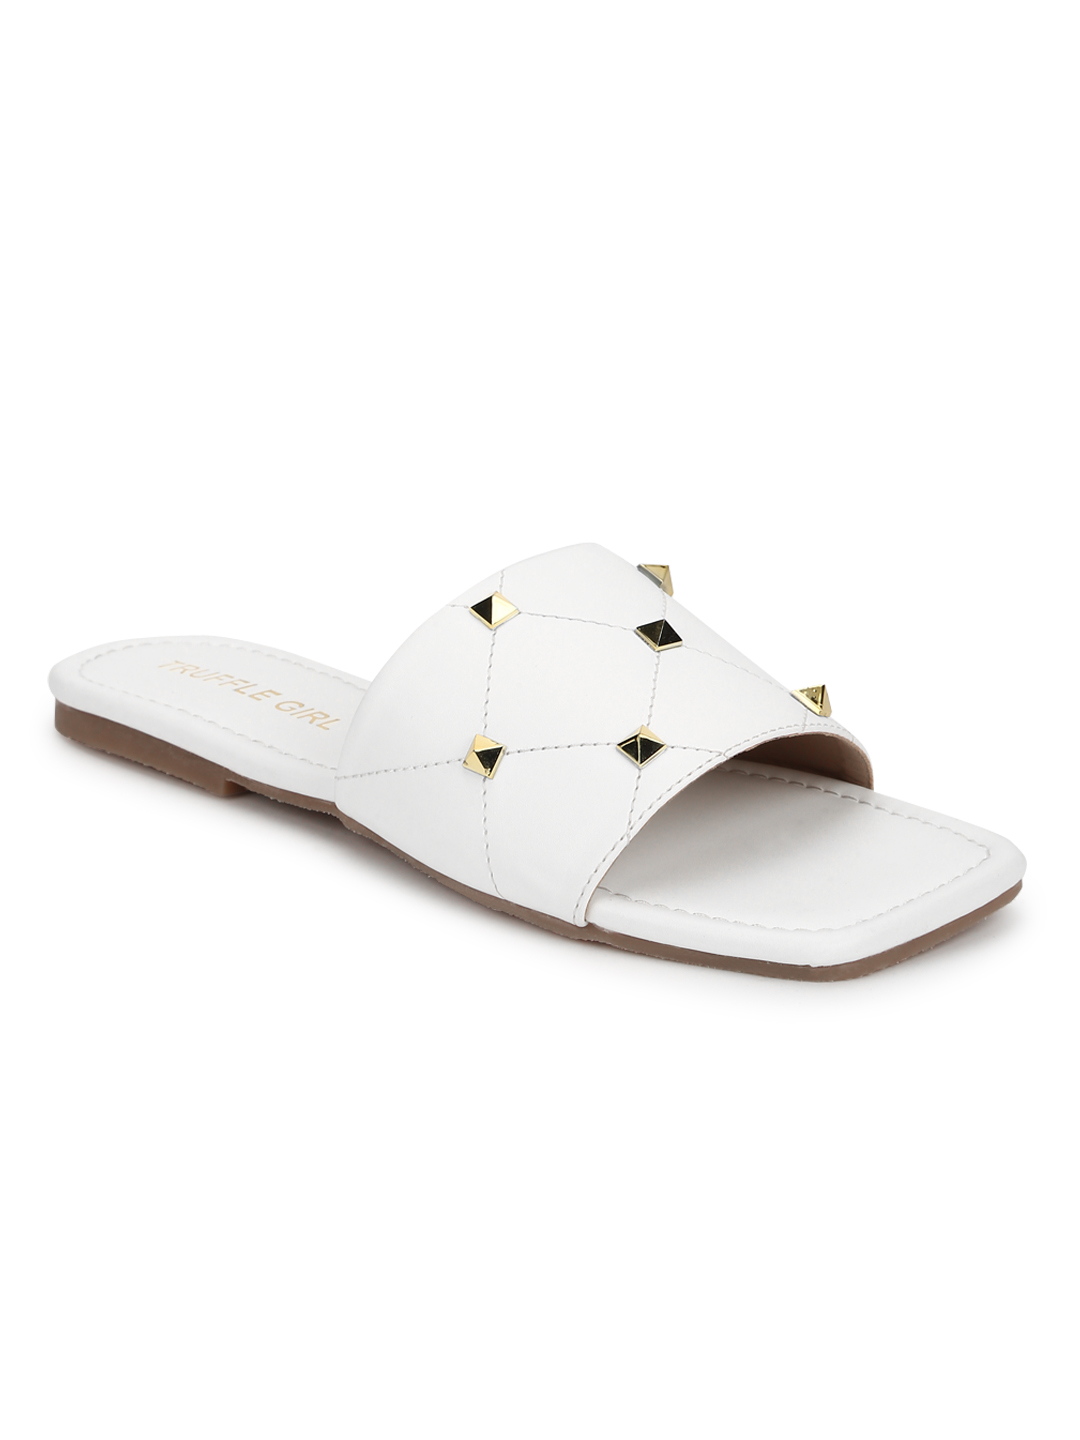 Truffle Collection | Truffle Collection White PU Studded Slides